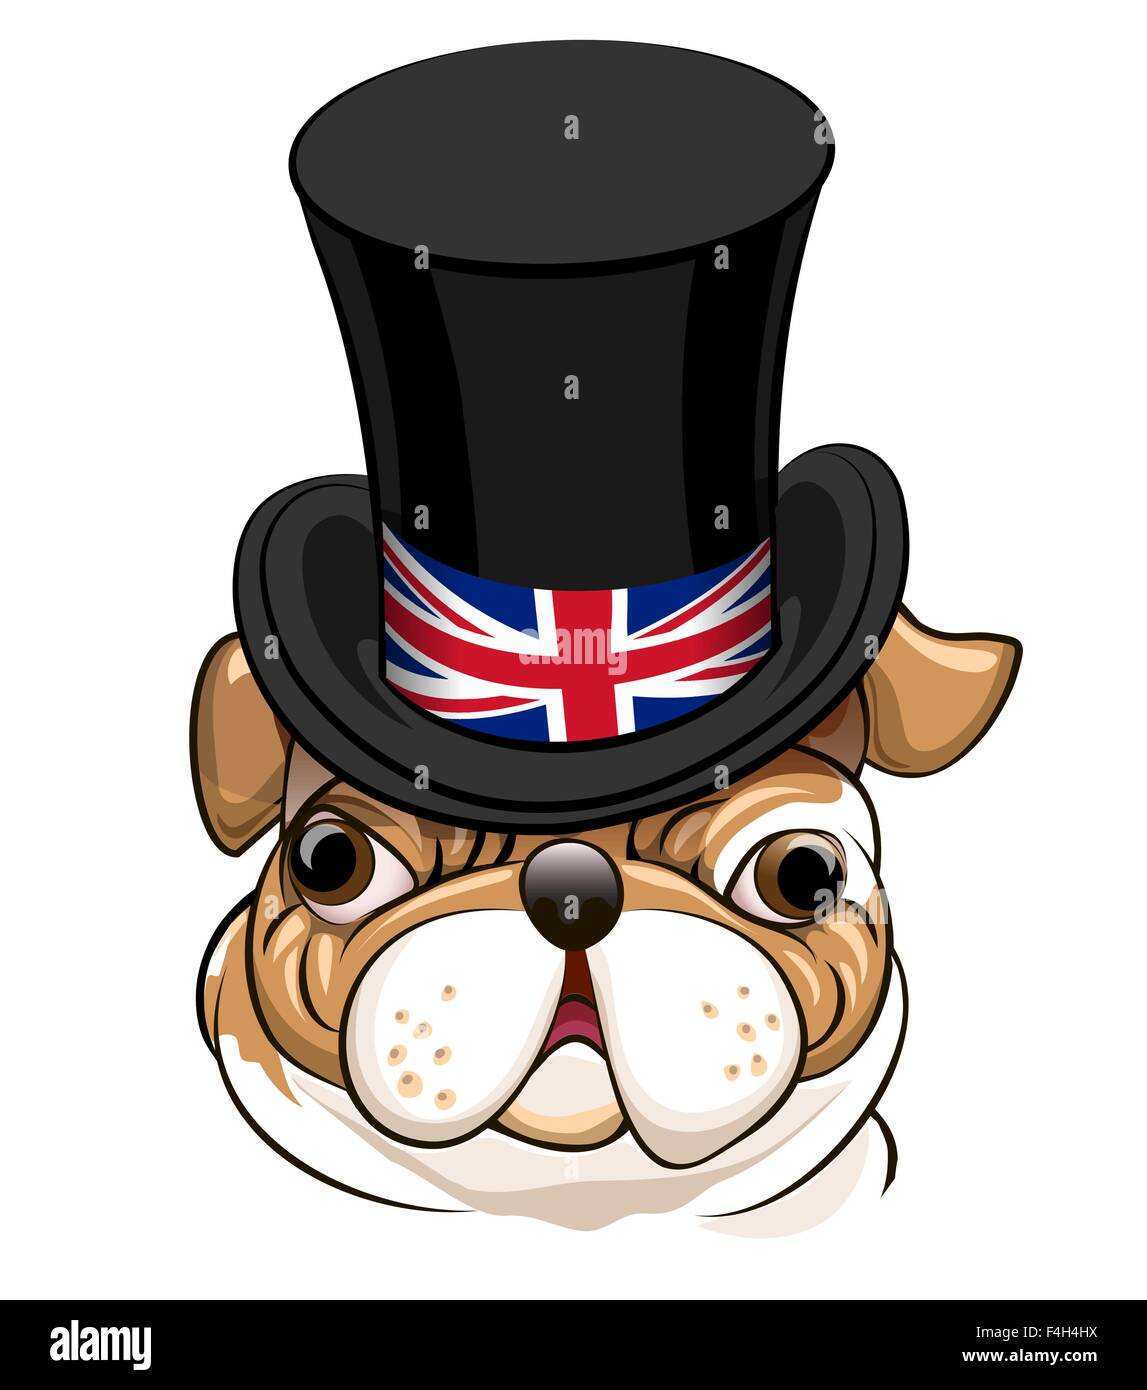 English Bulldog in Black cylinder hat with the symbol of the Great Britain flag. - Stock Image